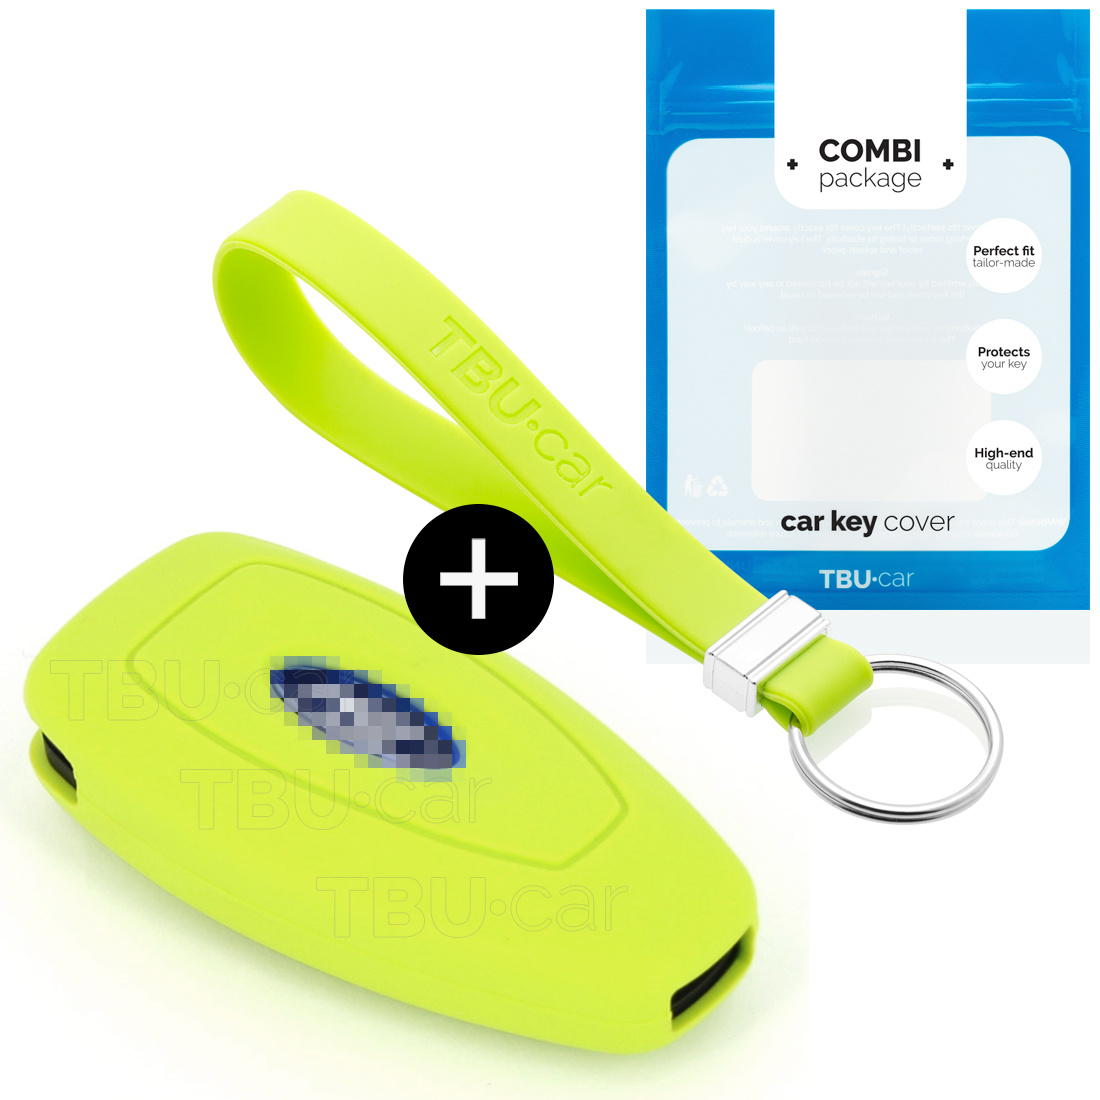 Ford Car key cover - Verde lima